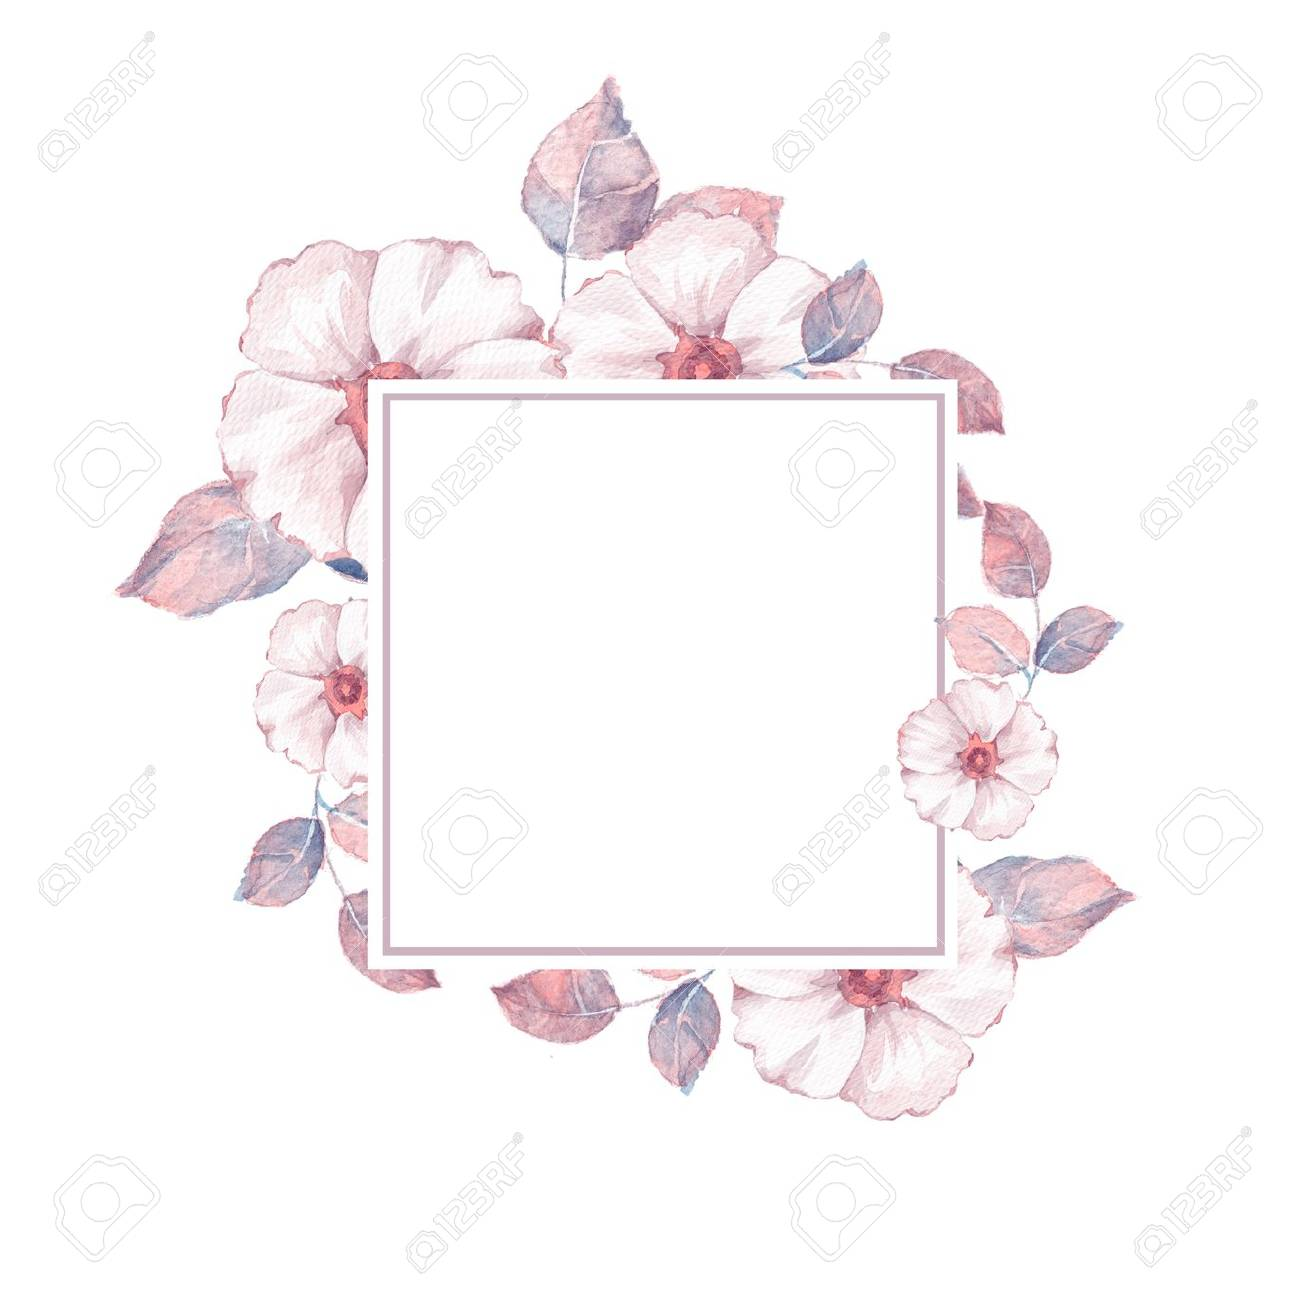 Watercolor Floral Frame Element For Design Watercolor Background